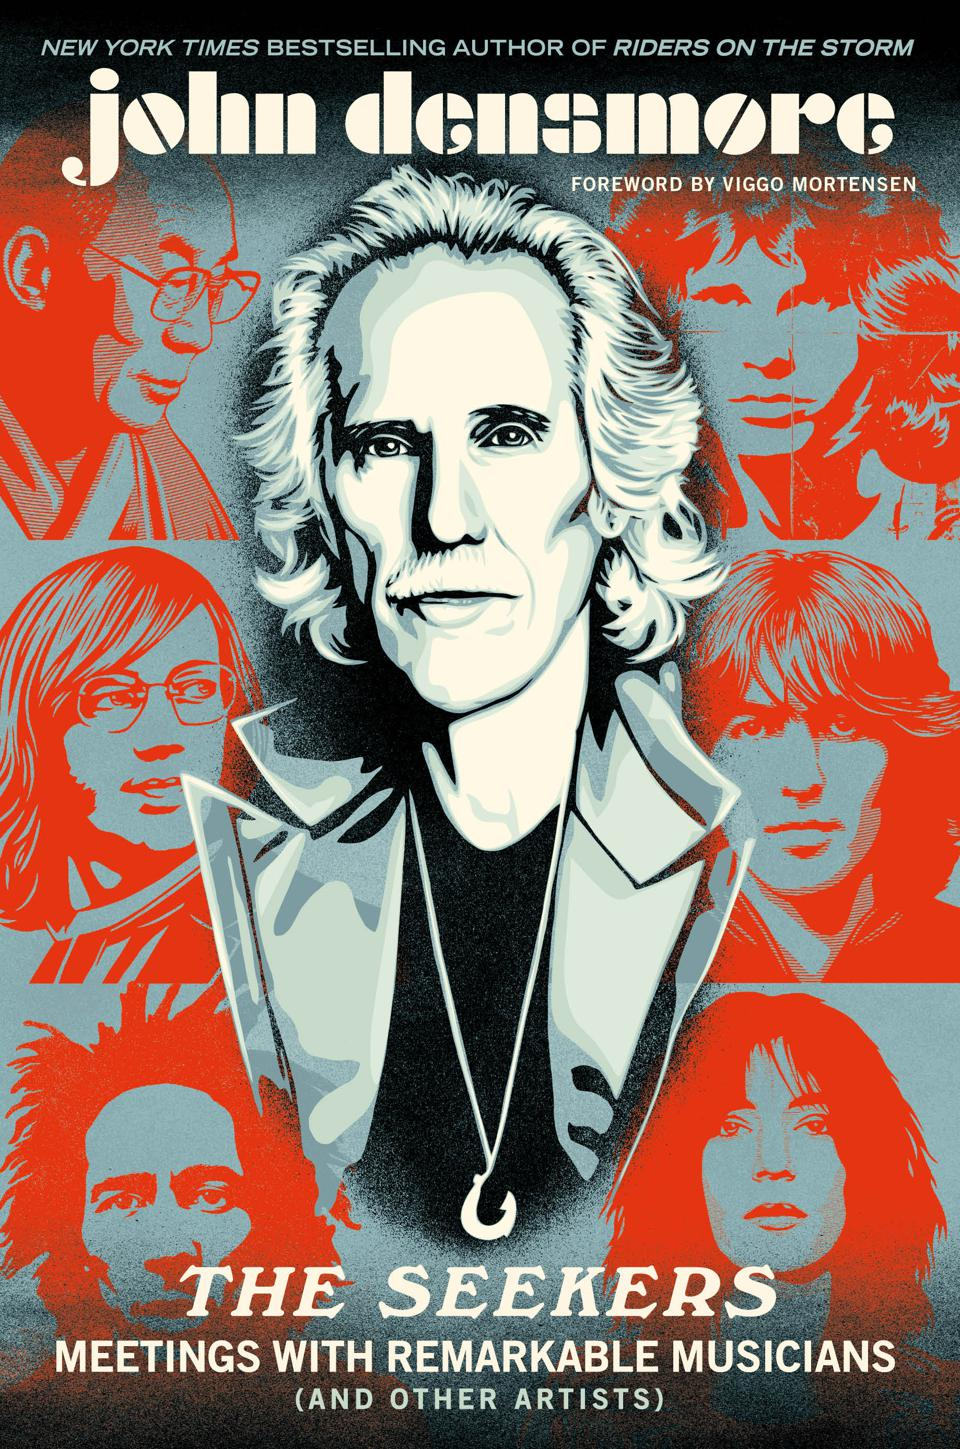 Cover of 'The Seekers' by John Densmore.